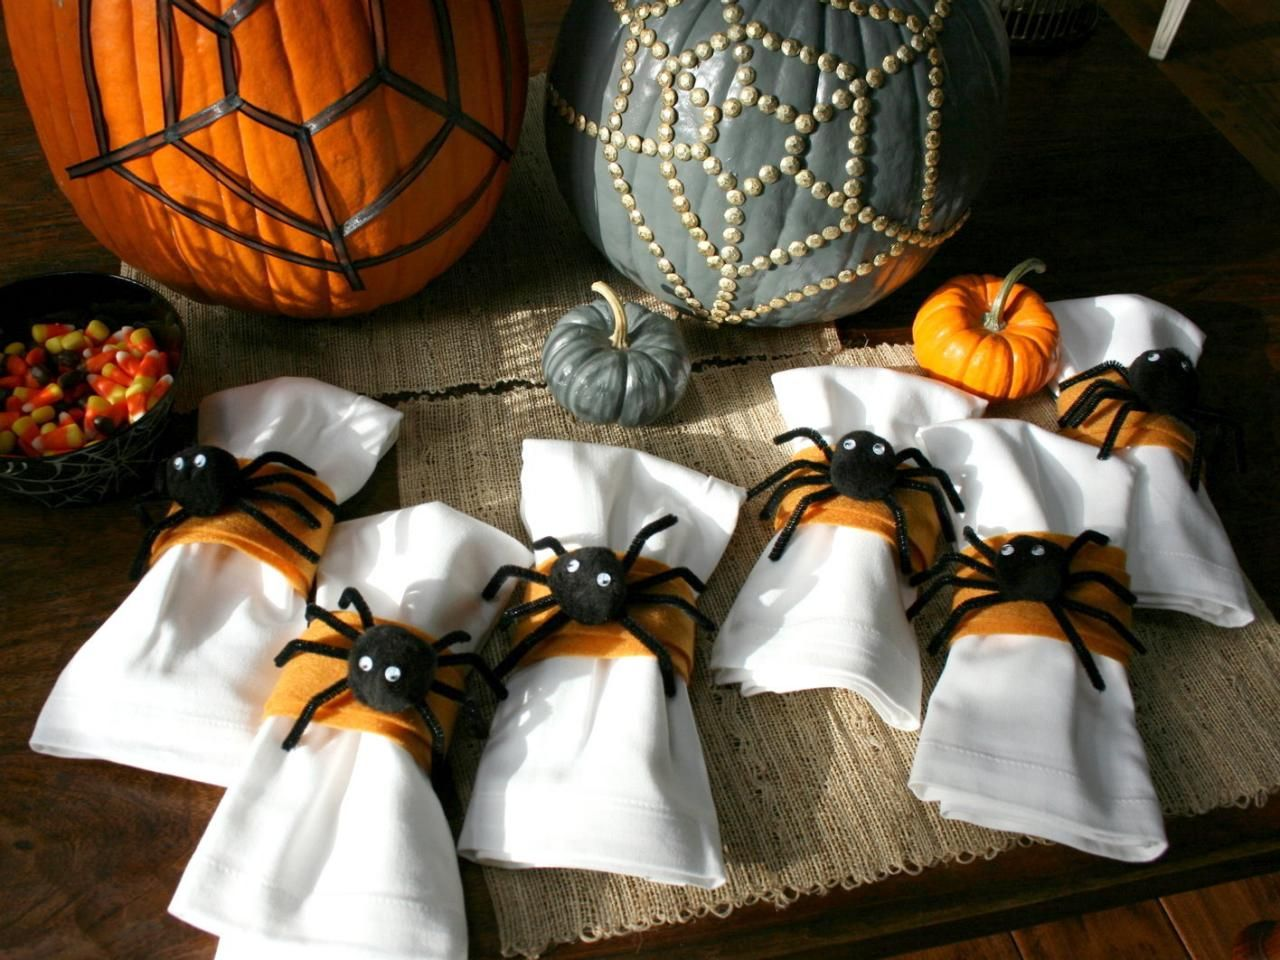 65+ DIY Halloween Decorations  Decorating Ideas Hgtv, Halloween - Homemade Halloween Decorations